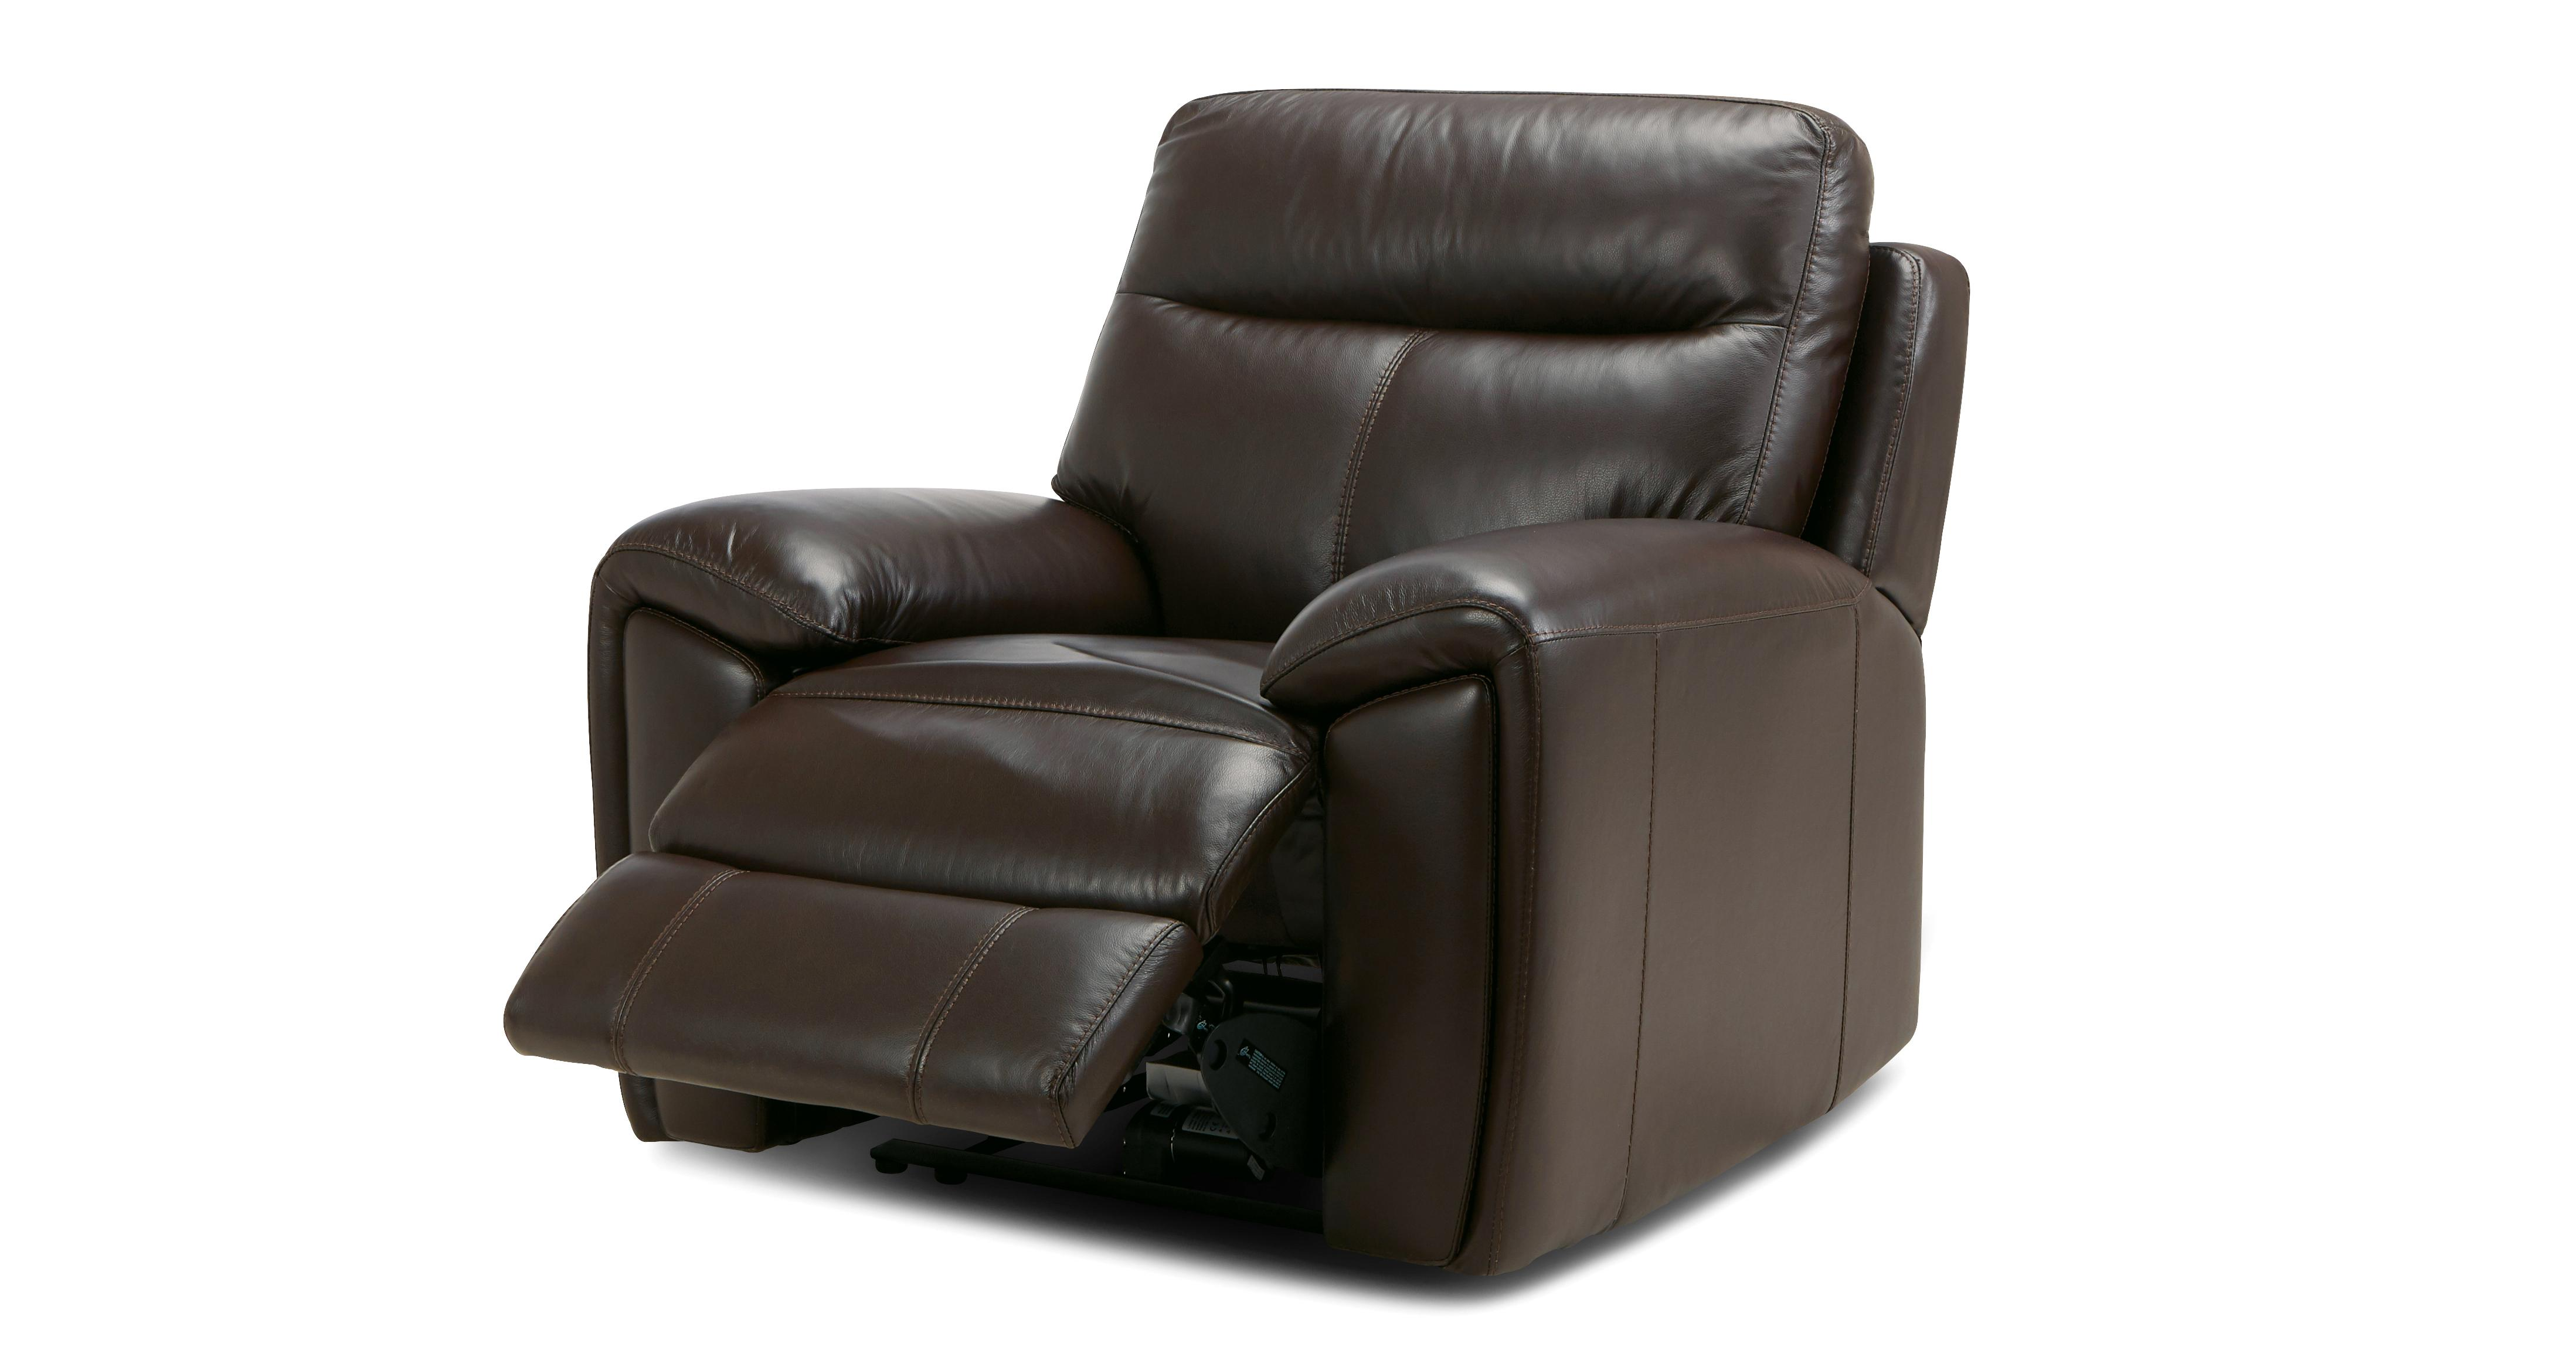 Astonishing About The Lowell Power Plus Recliner Chair Gamerscity Chair Design For Home Gamerscityorg